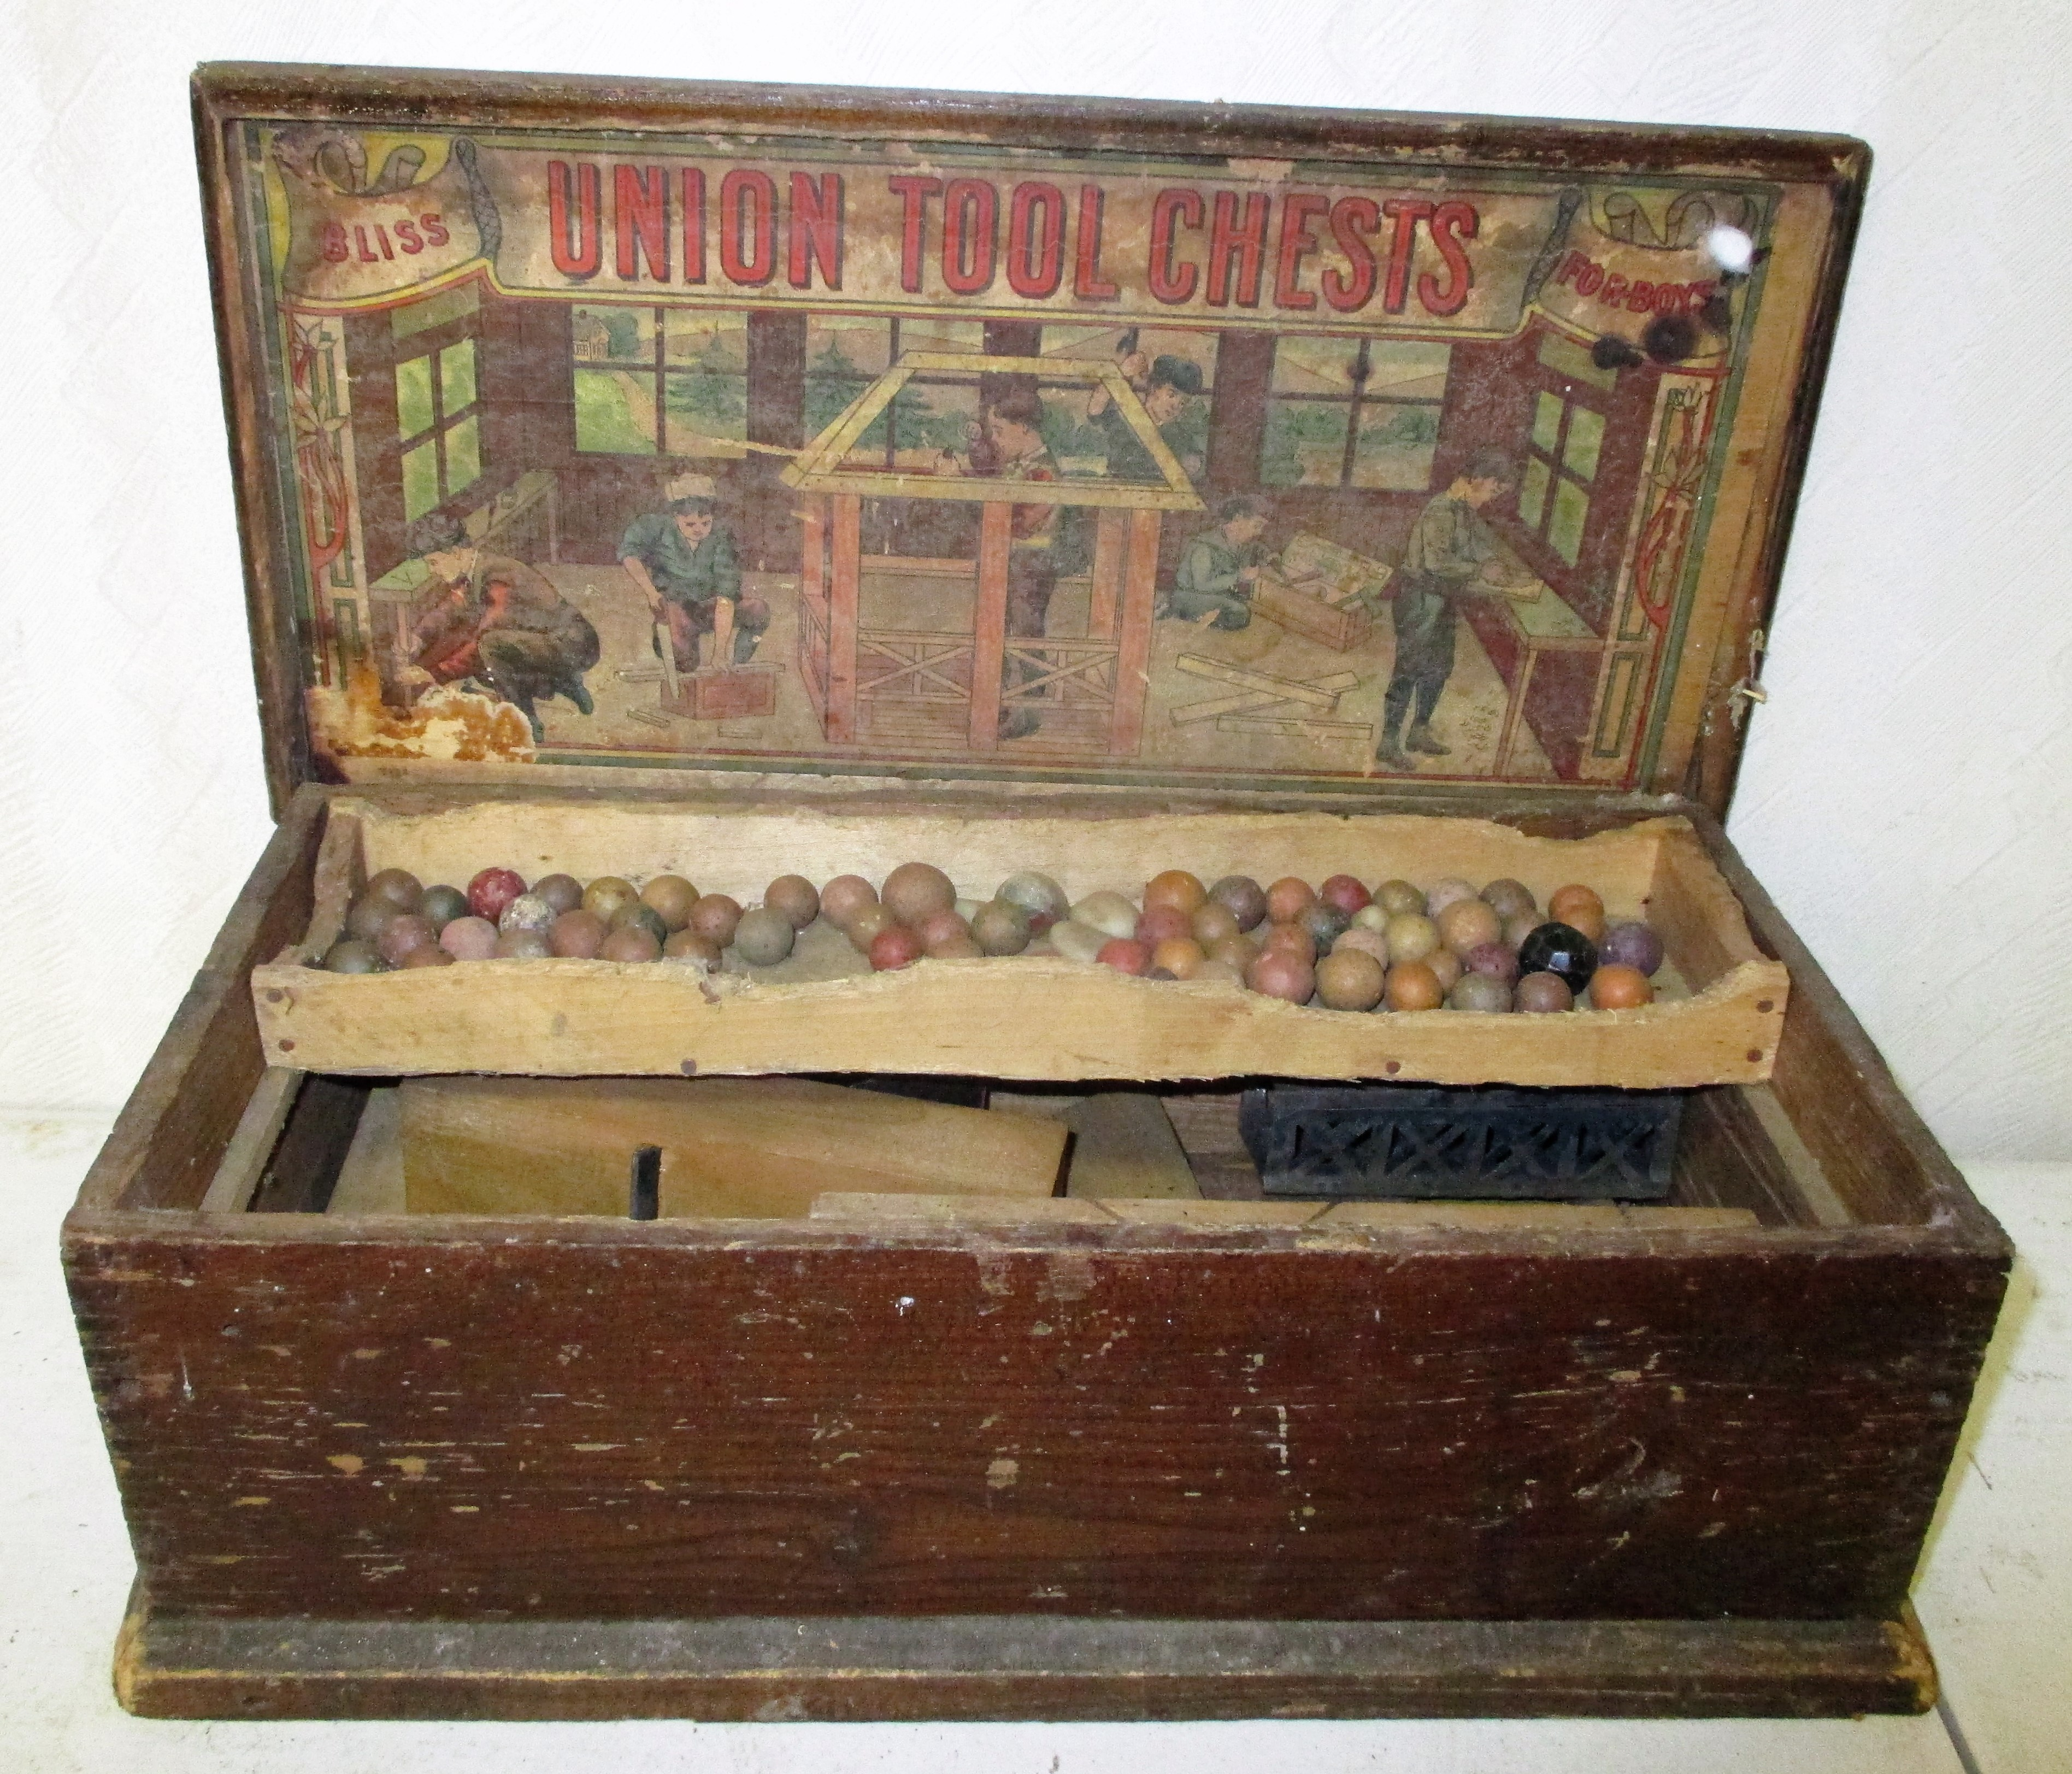 176: Union Tool Chest For Boys